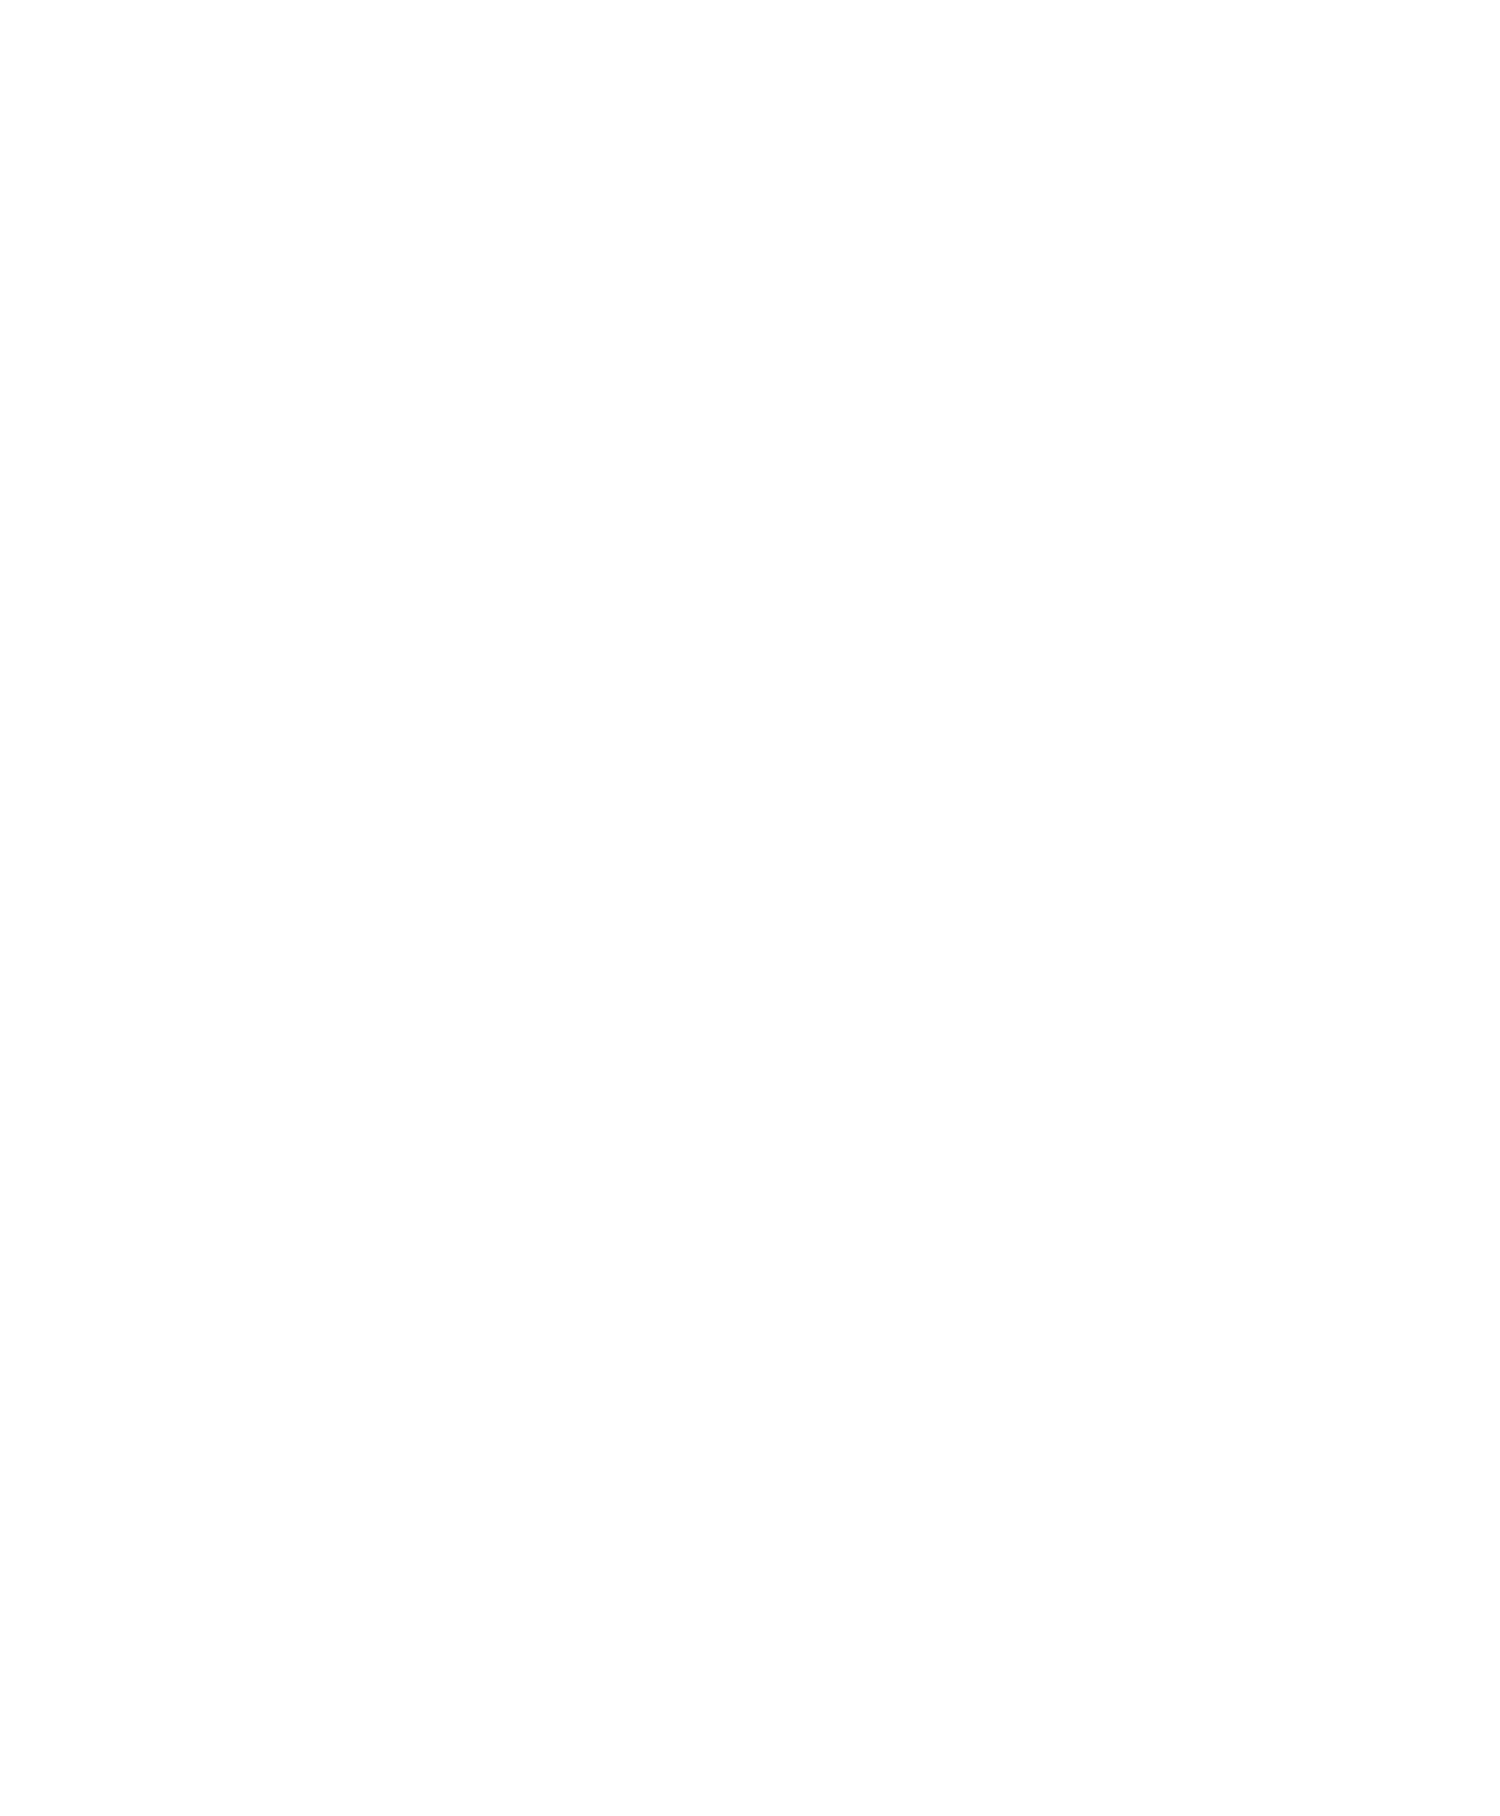 Corey Ray Photography